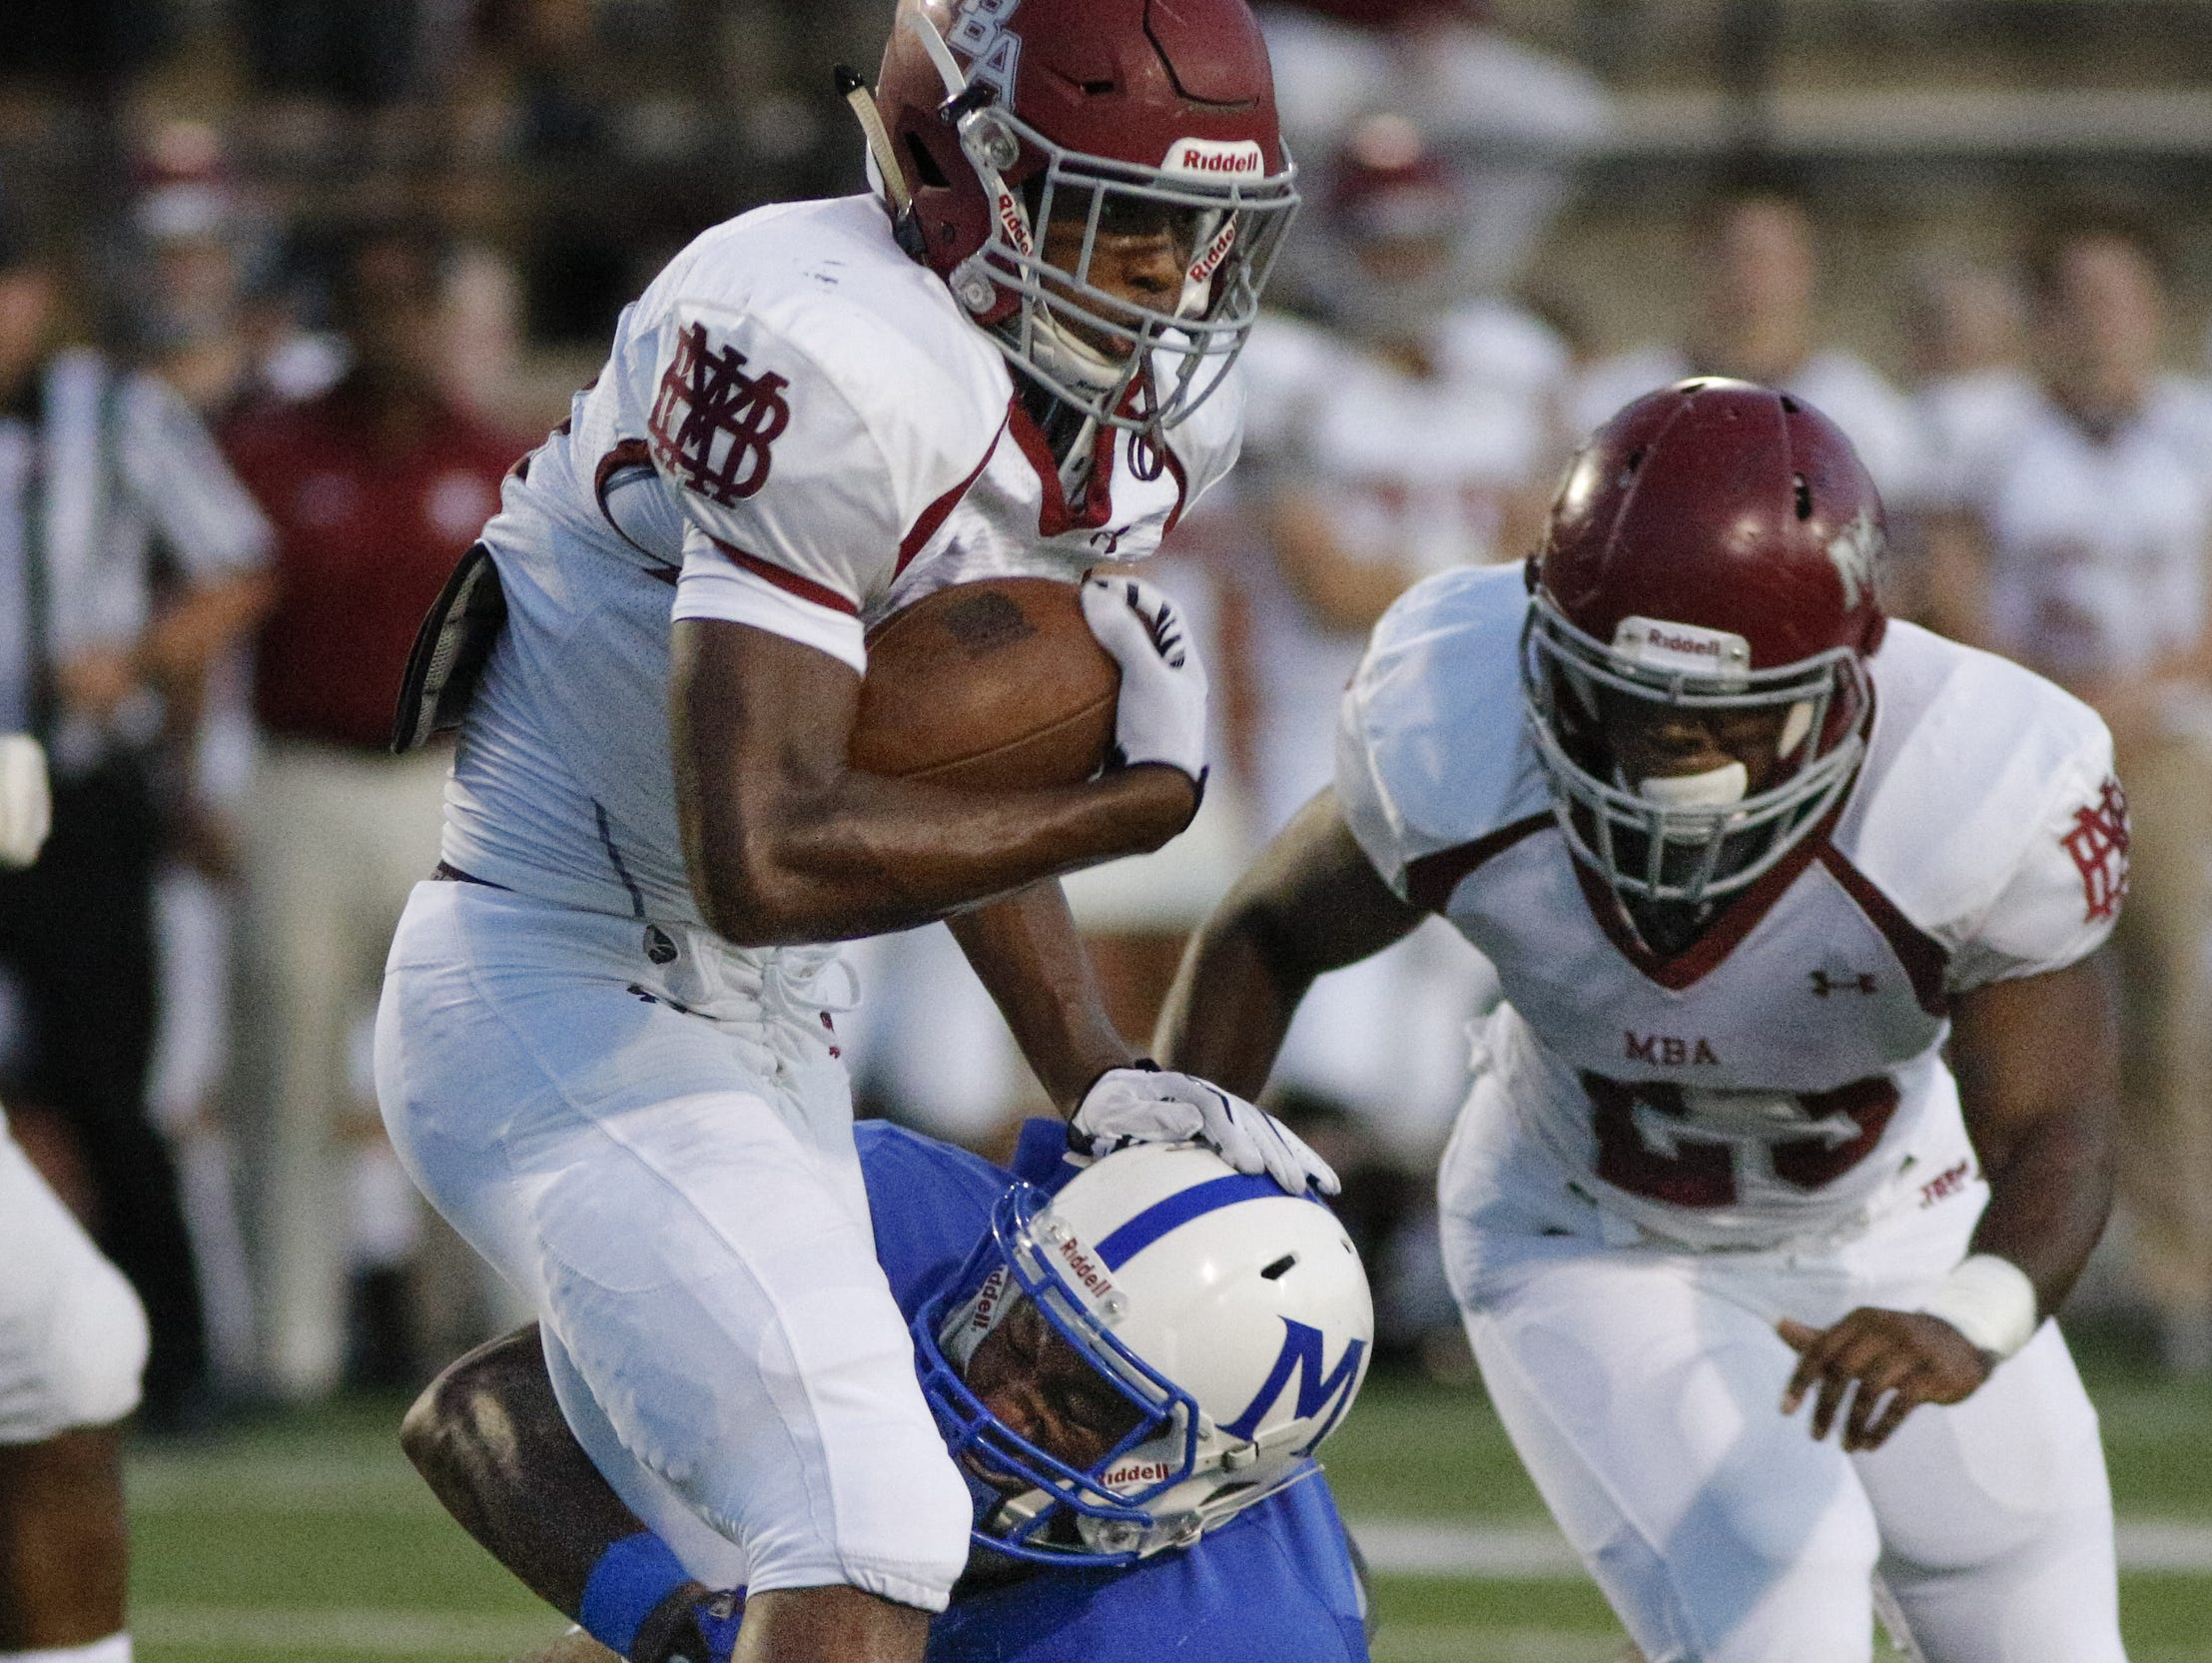 MBA running back Ty Chandler (left) breaks free from a McCallie defender during last week's 33-27 overtime win.